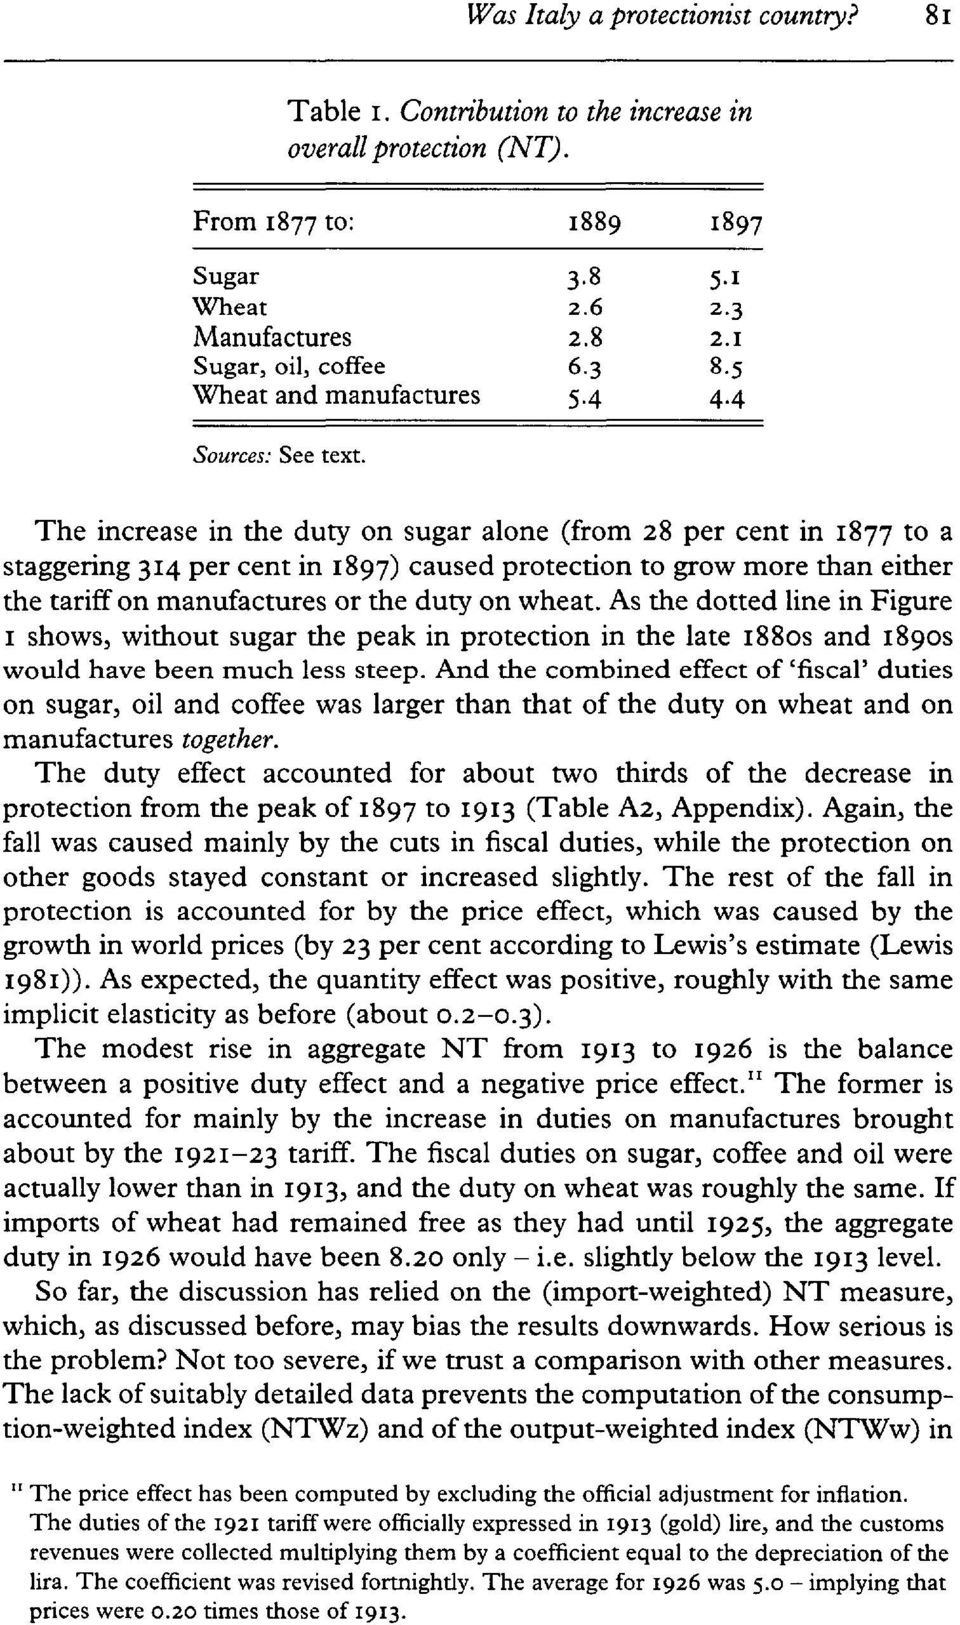 The increase in the duty on sugar alone (from 28 per cent in 1877 to a staggering 314 per cent in 1897) caused protection to grow more than either the tariff on manufactures or the duty on wheat.